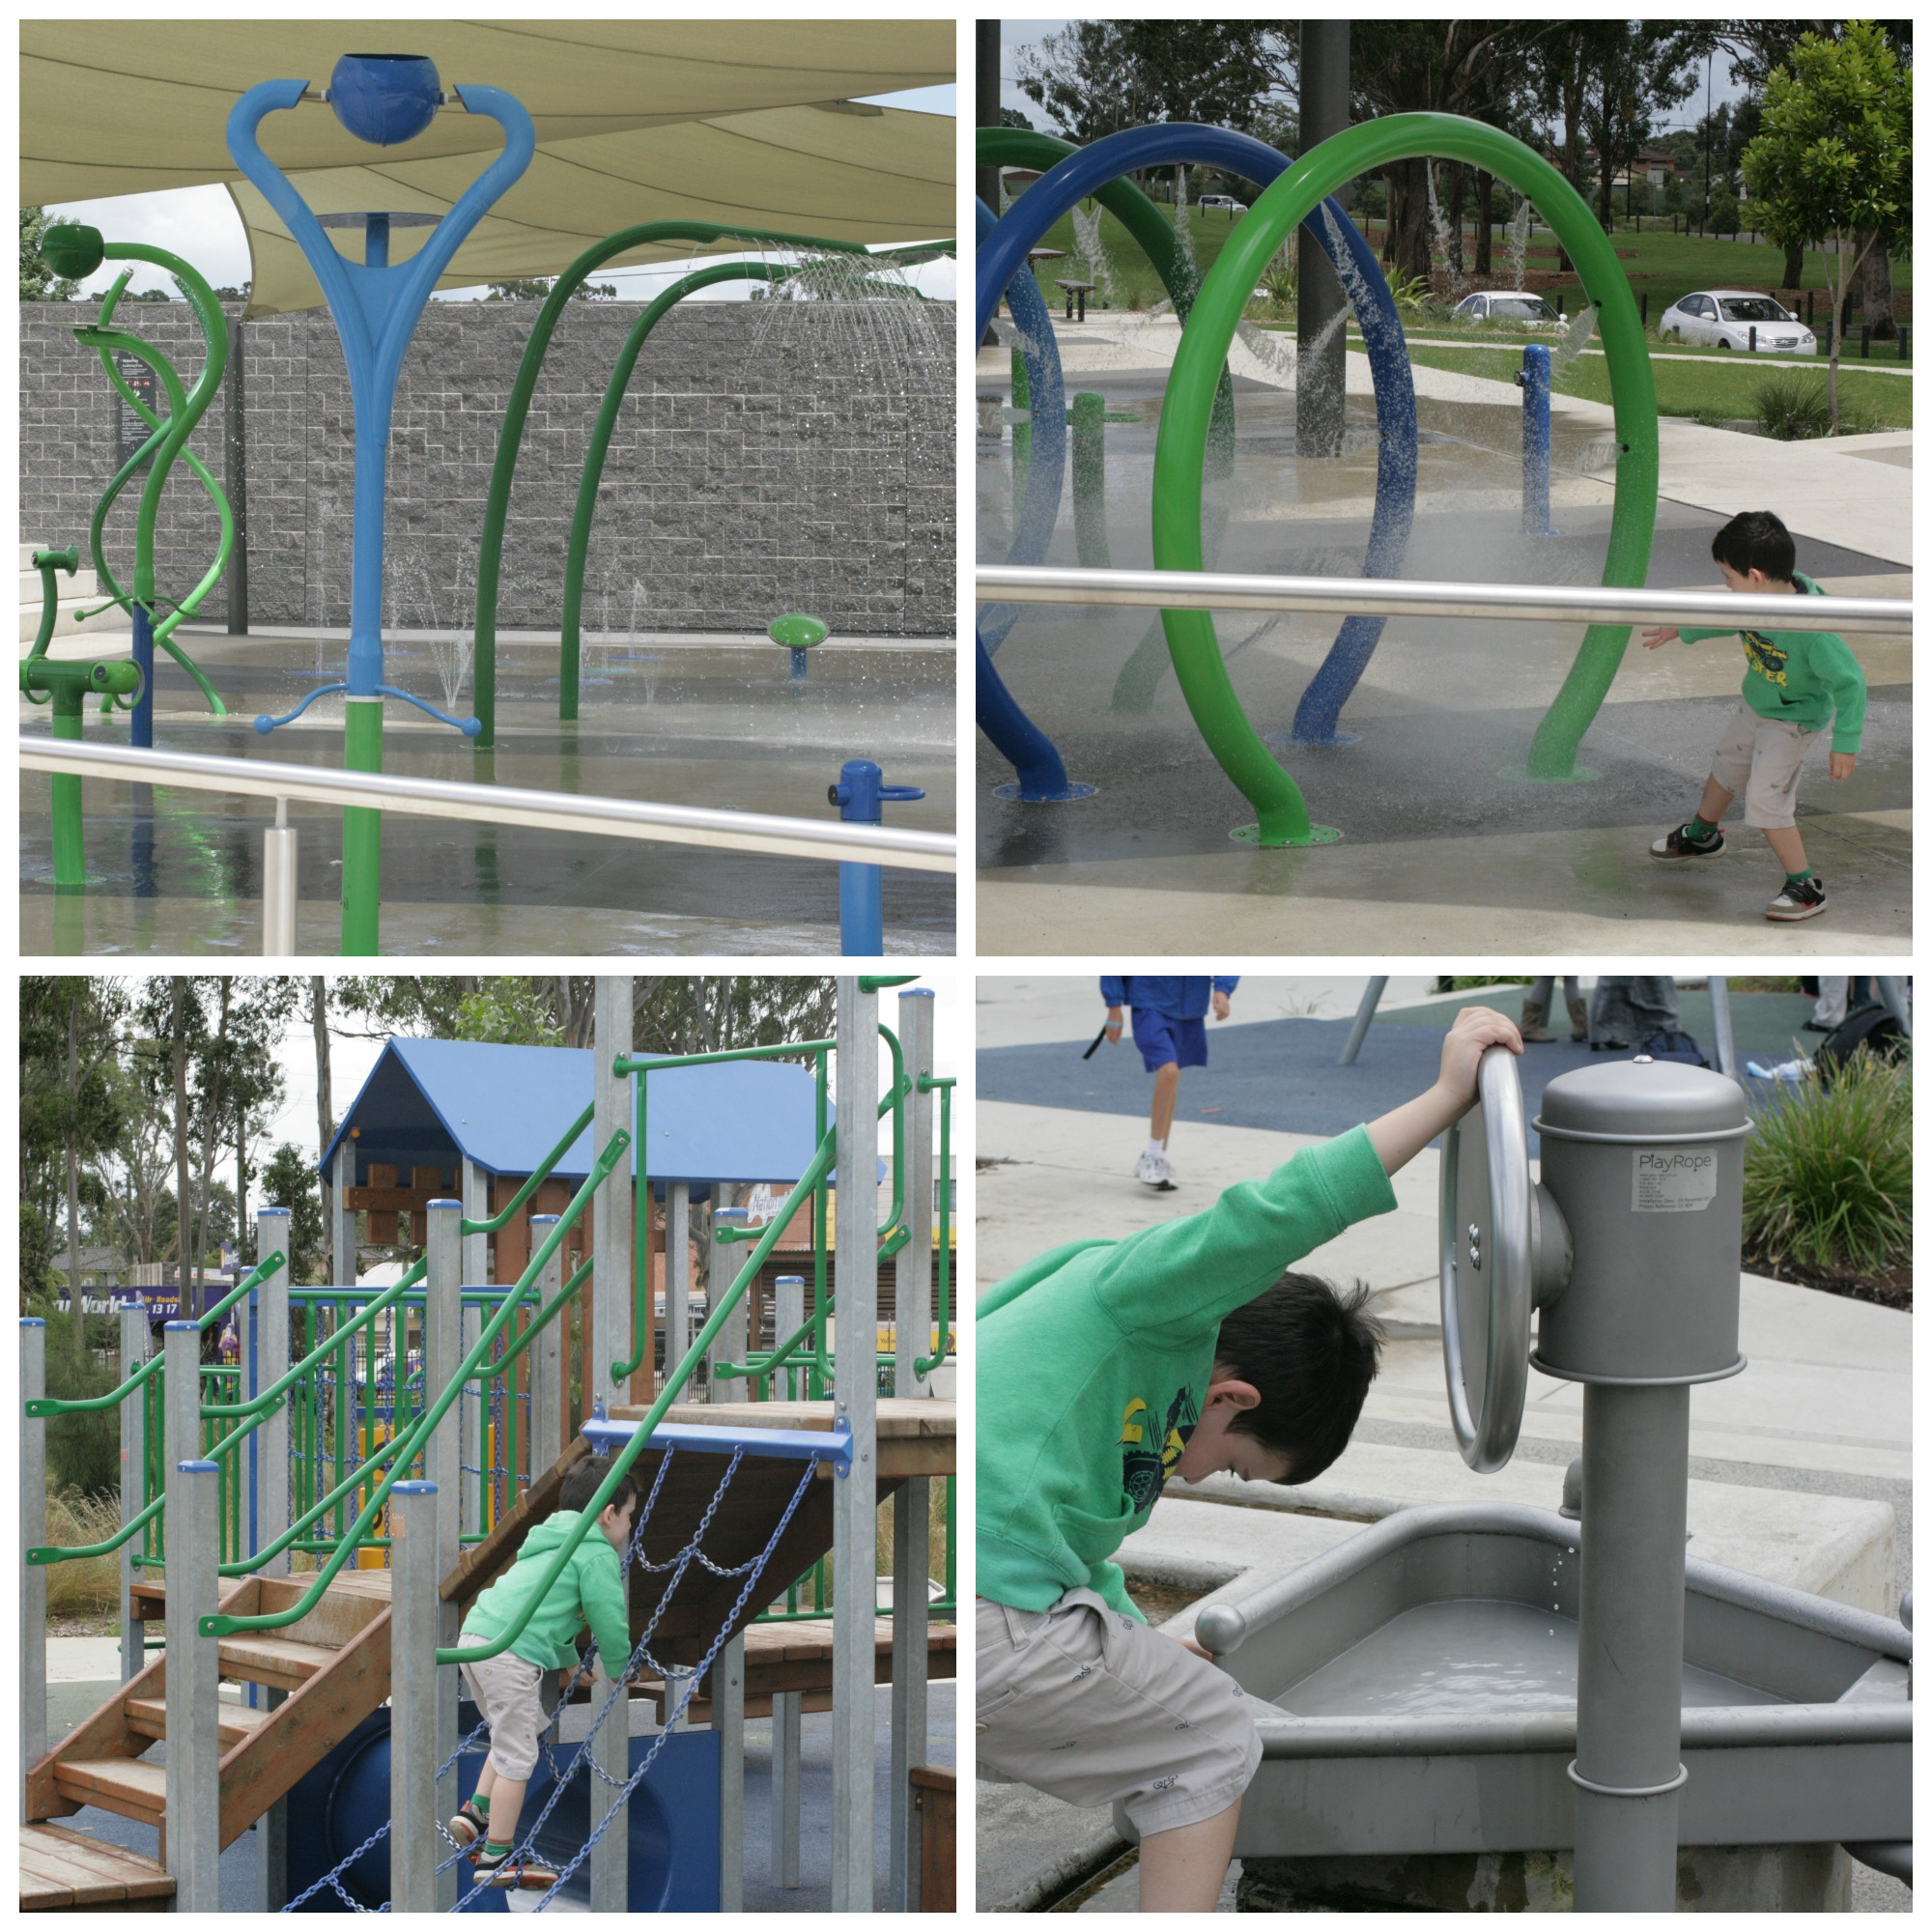 Blacktown Water Play Park